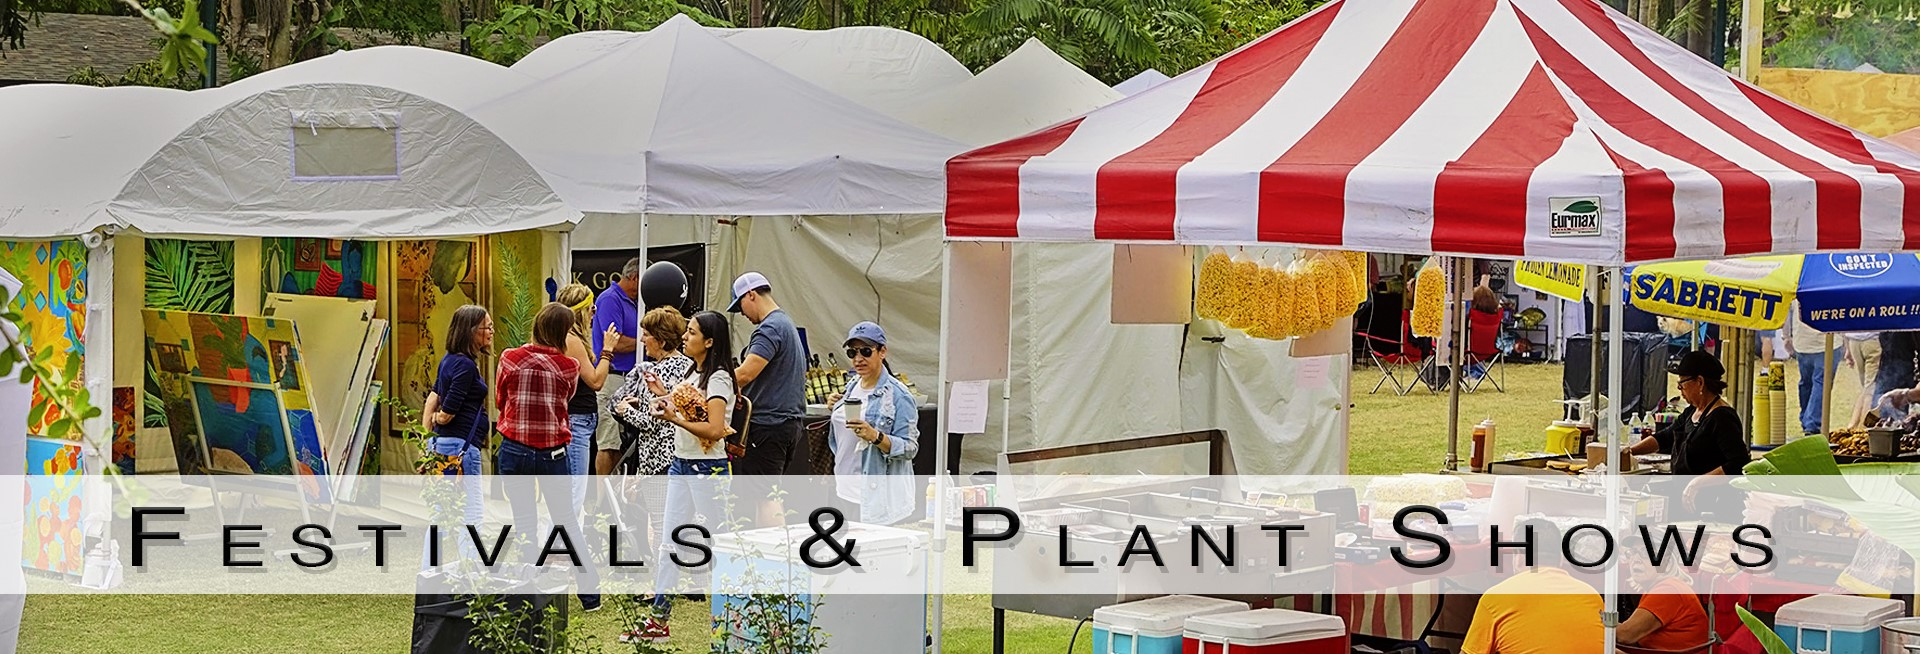 festivals plants shows